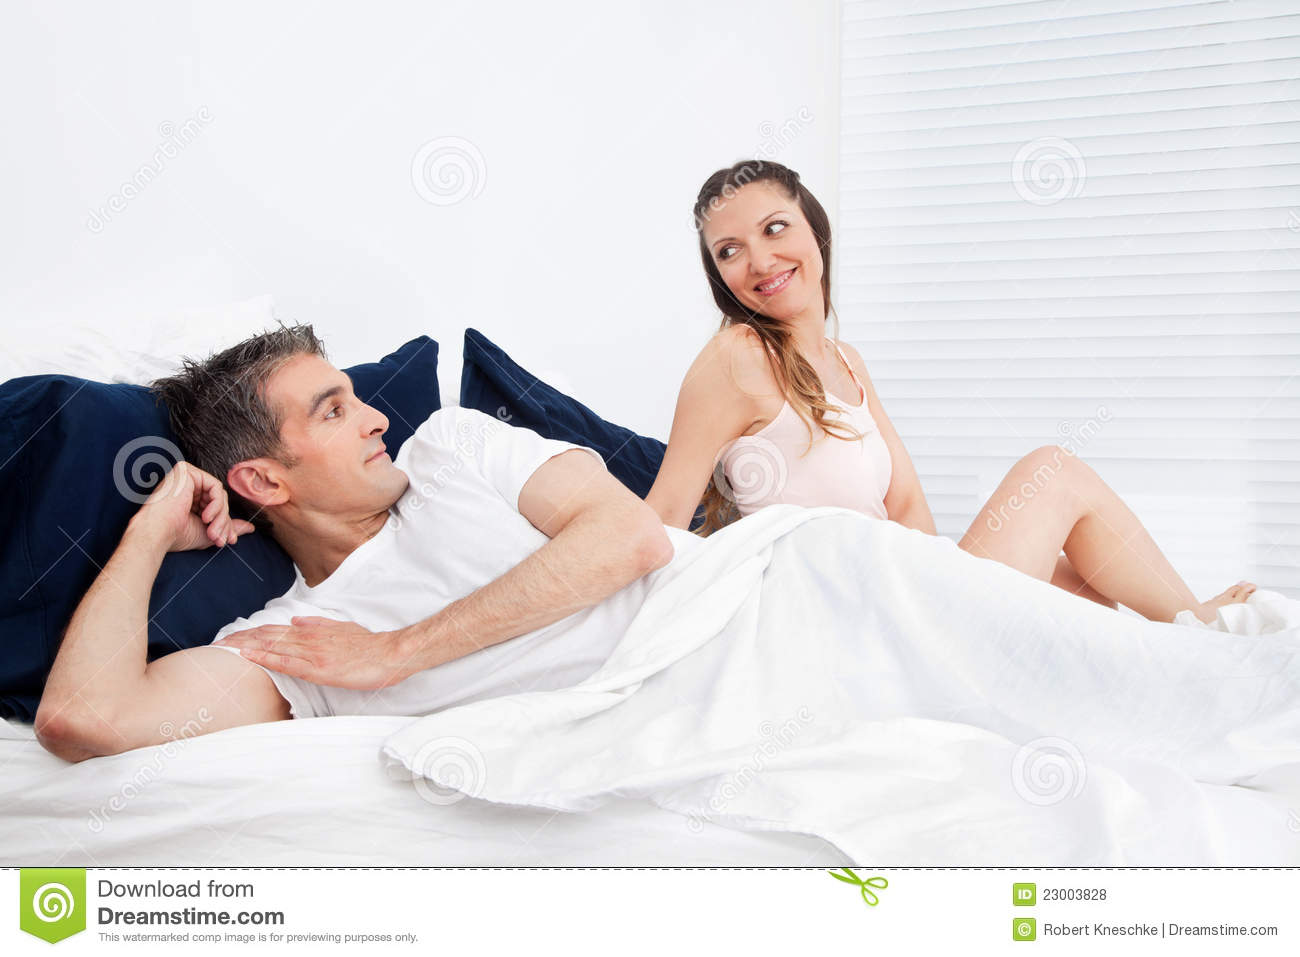 married senior couple in bed royalty free stock photos image 23003828. Black Bedroom Furniture Sets. Home Design Ideas